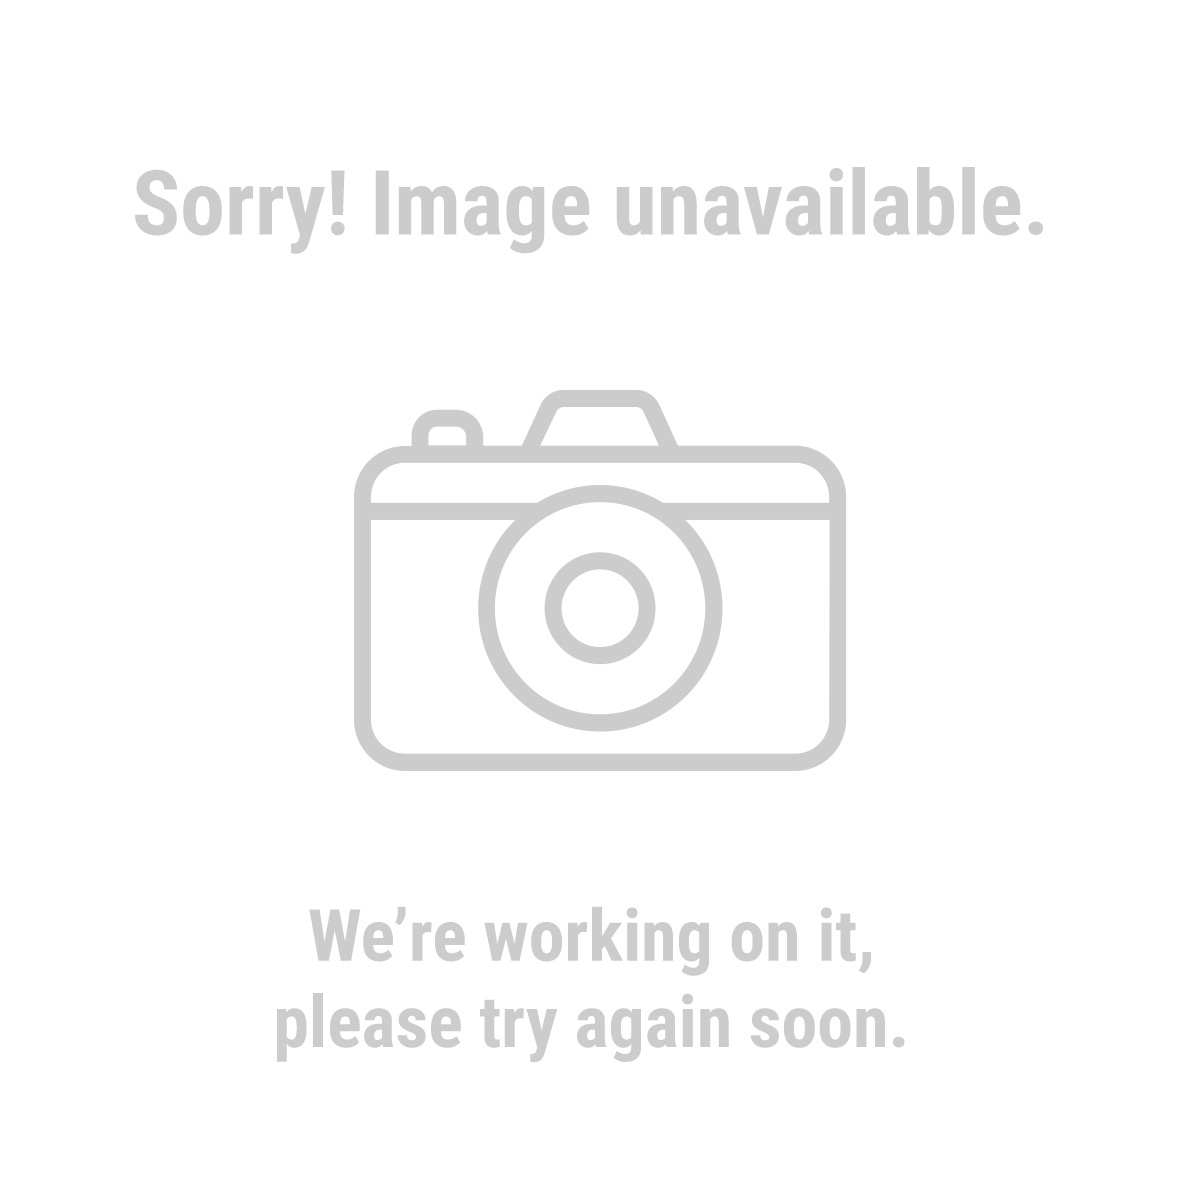 Admiral® 62724 10 in. 80T Fine Cut Circular Saw Blade